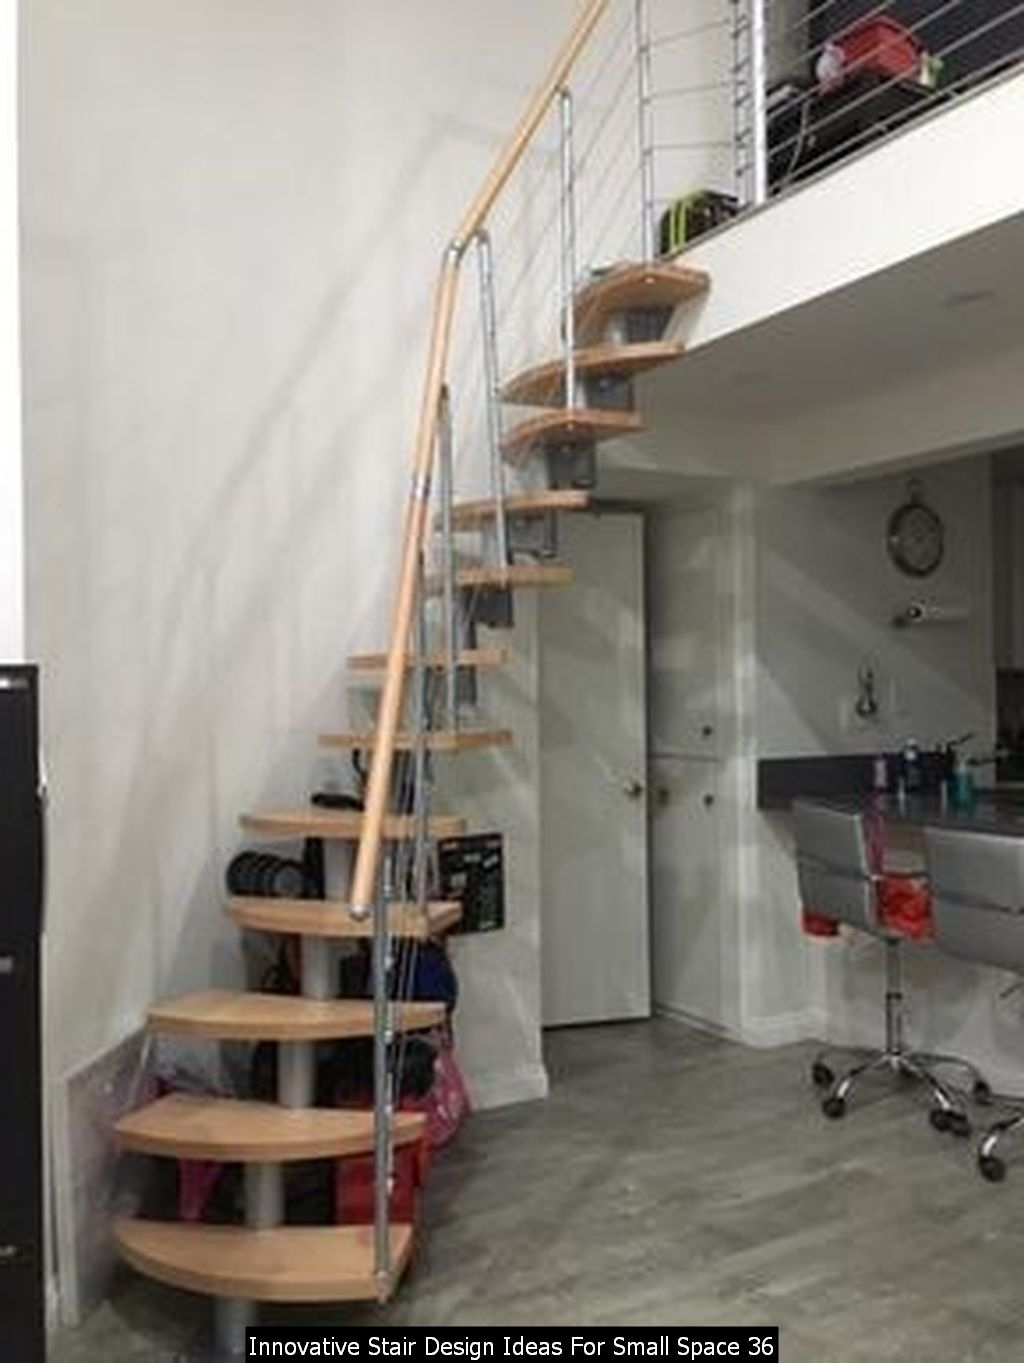 Innovative Stair Design Ideas For Small Space 36